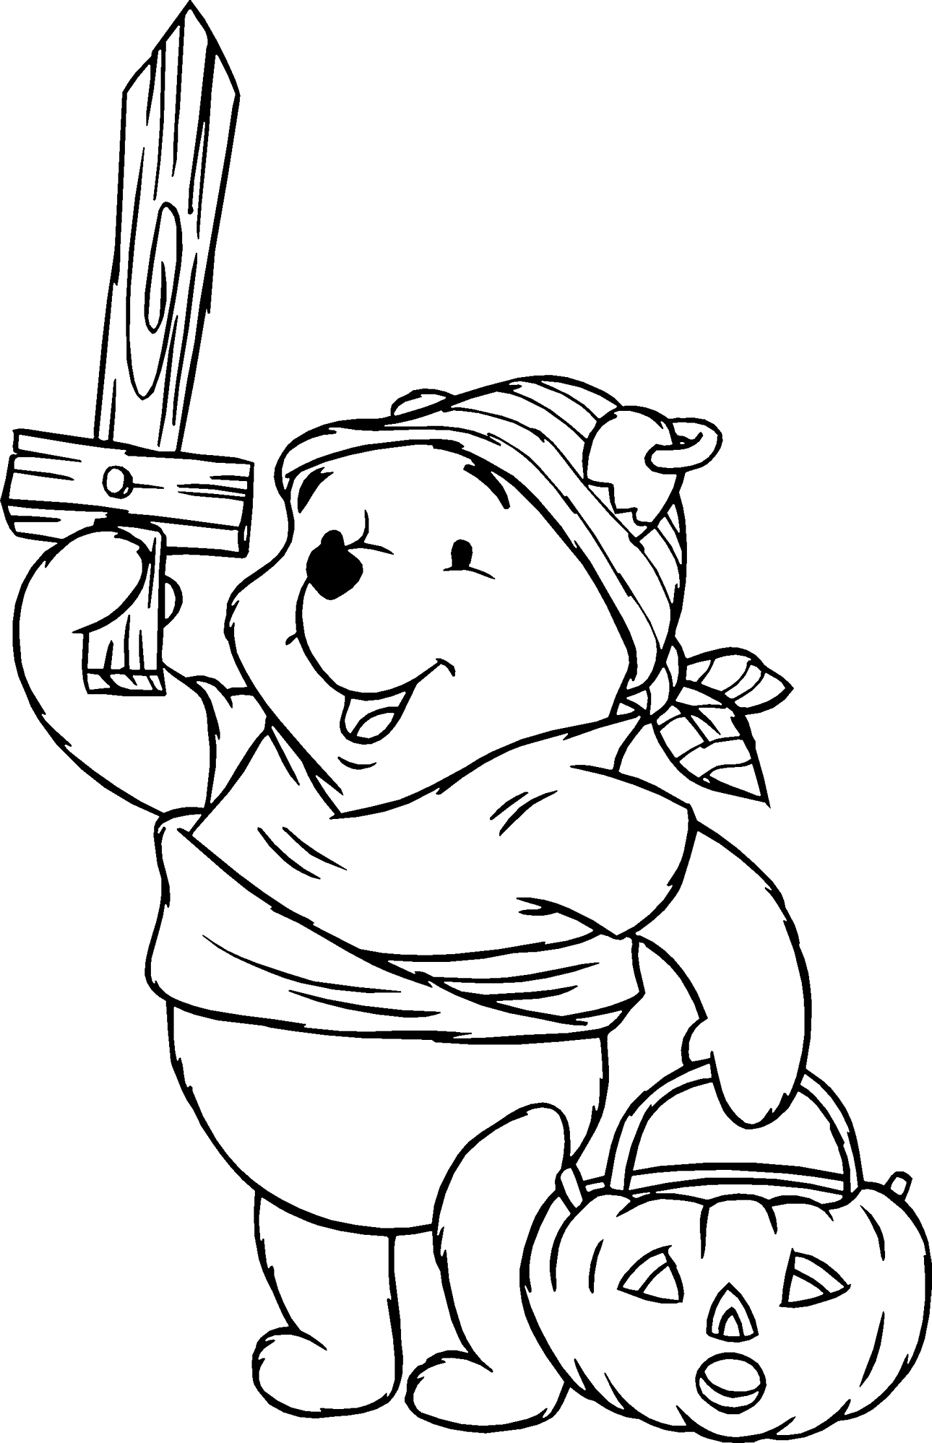 kids printable coloring pages halloween - photo#30